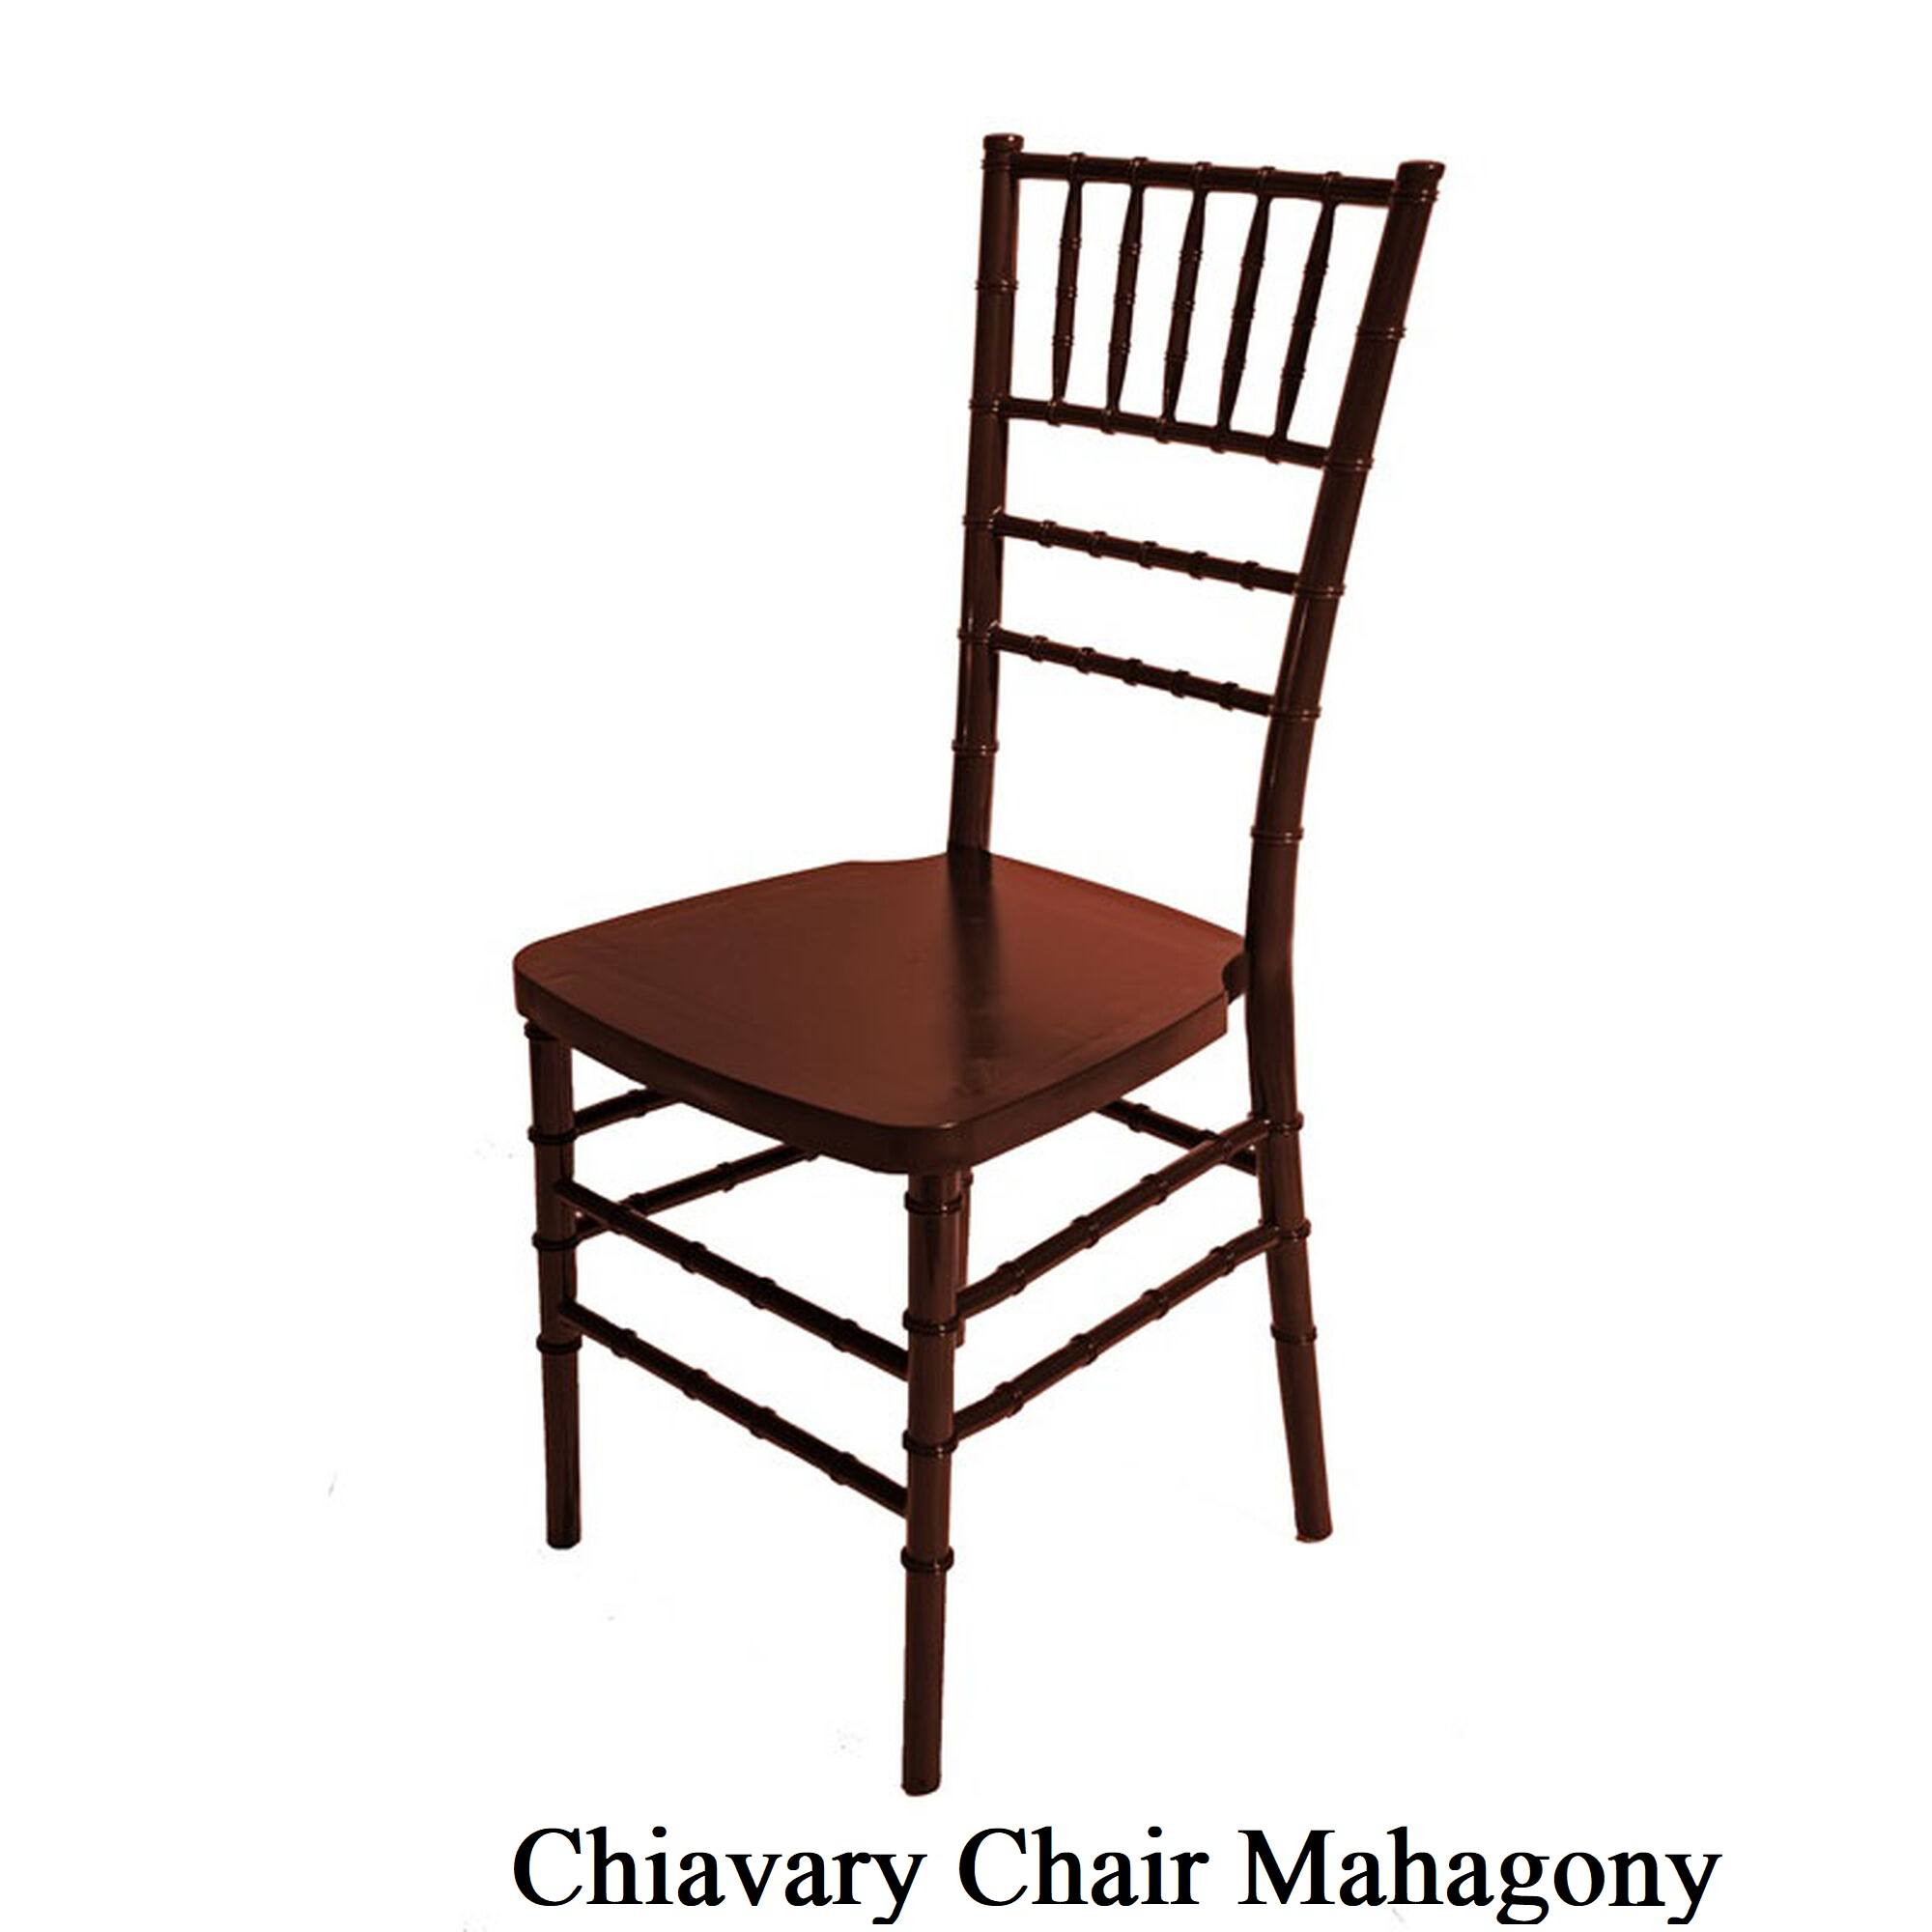 Chiavary Chair Mahagony